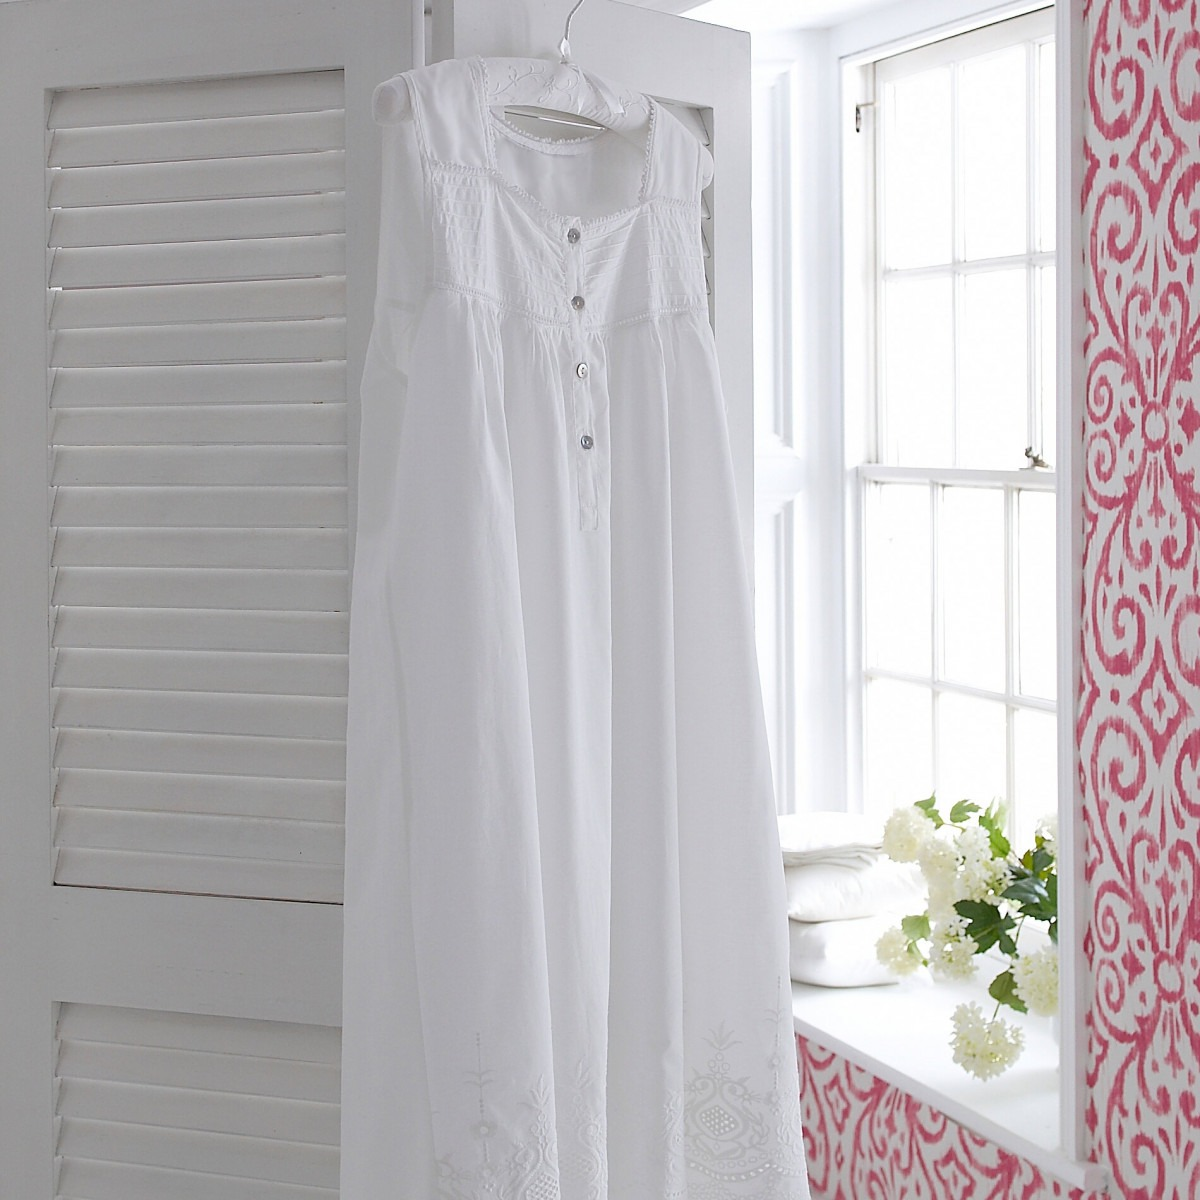 Rosemary White Cotton Nightdress